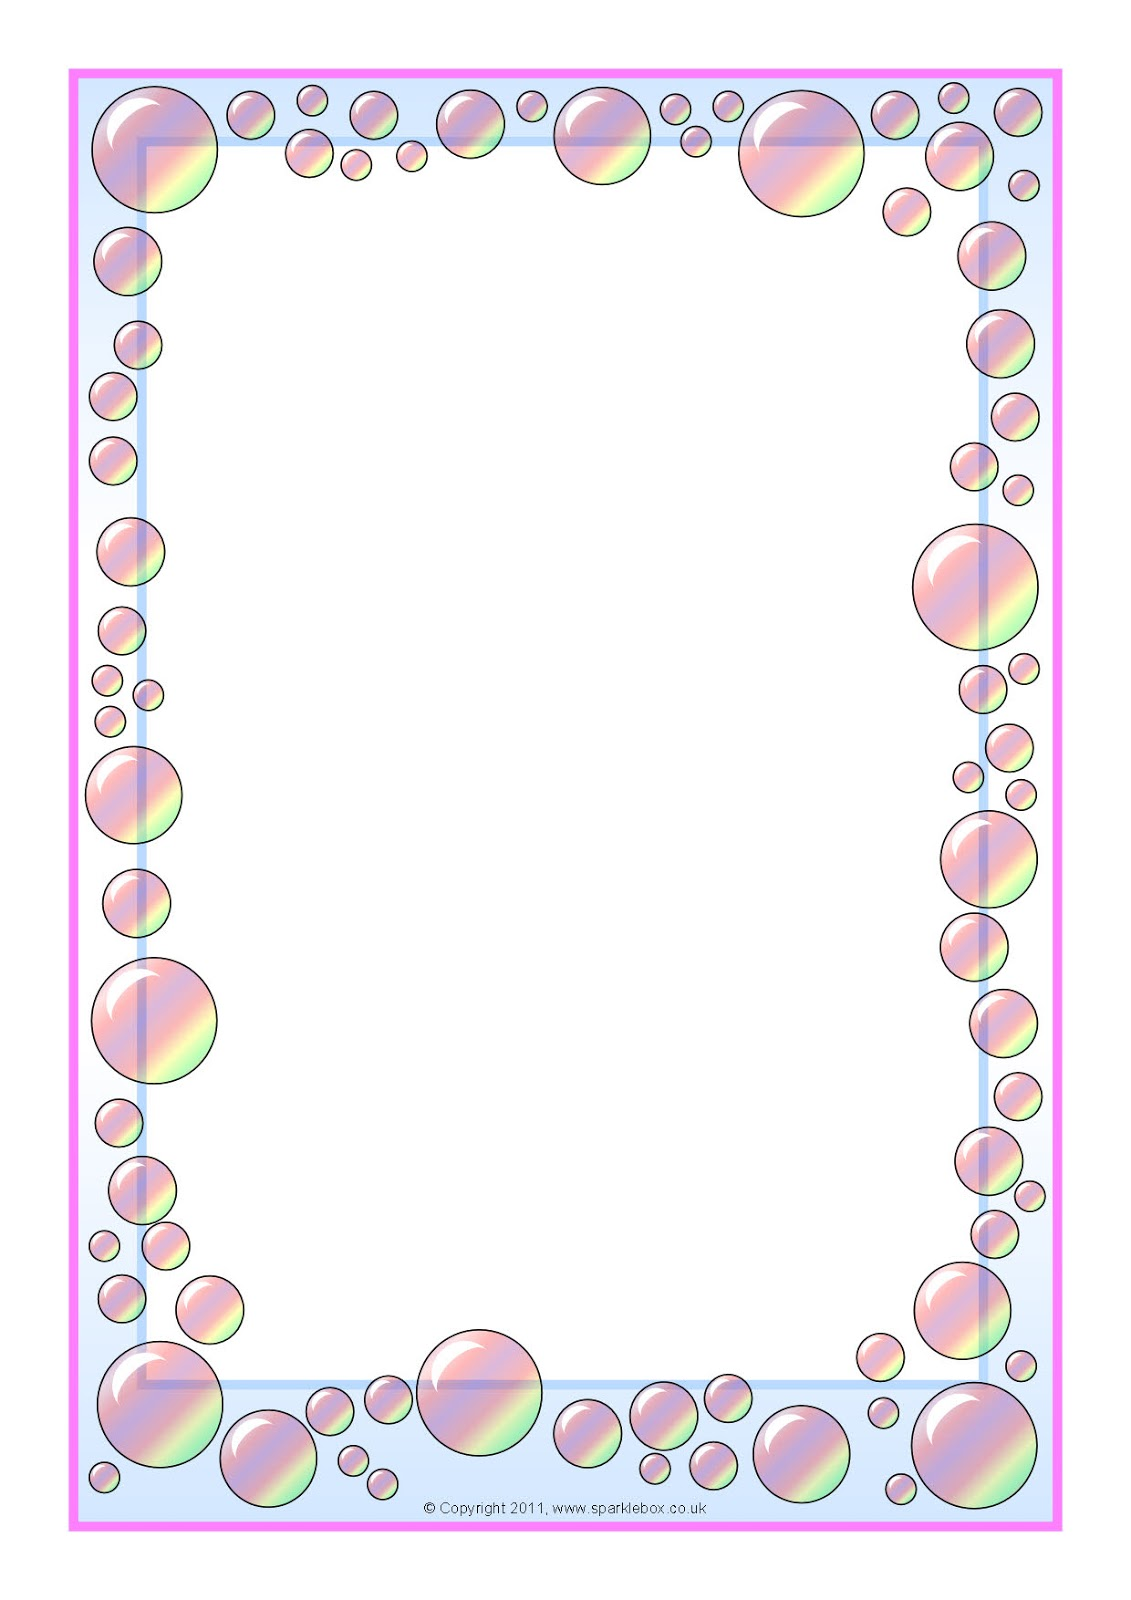 Simple Border Designs for Paper